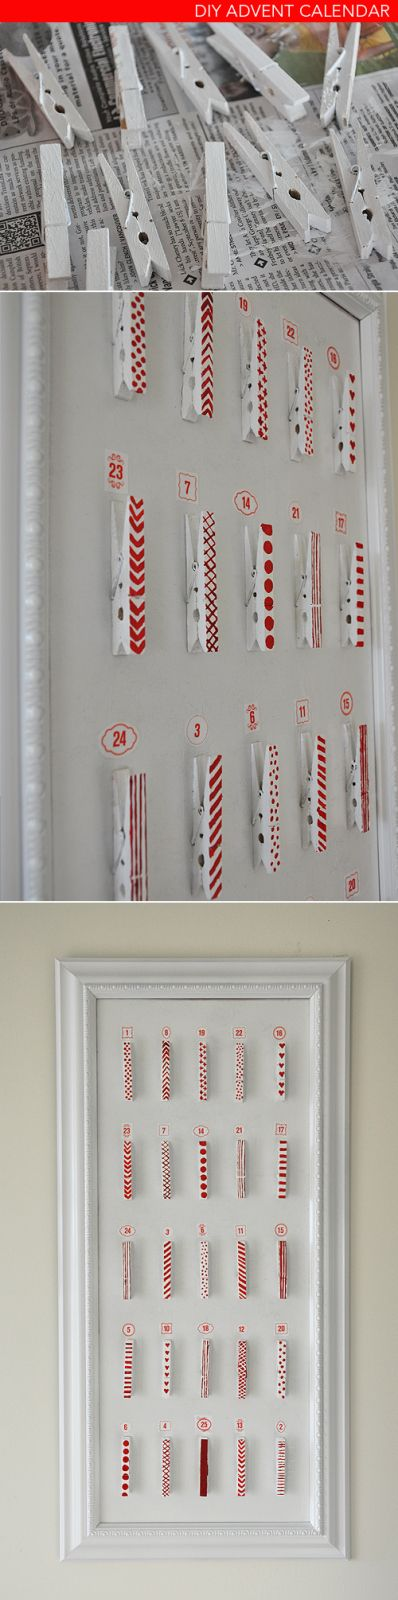 Christmas Craft Project: Advent Calendar